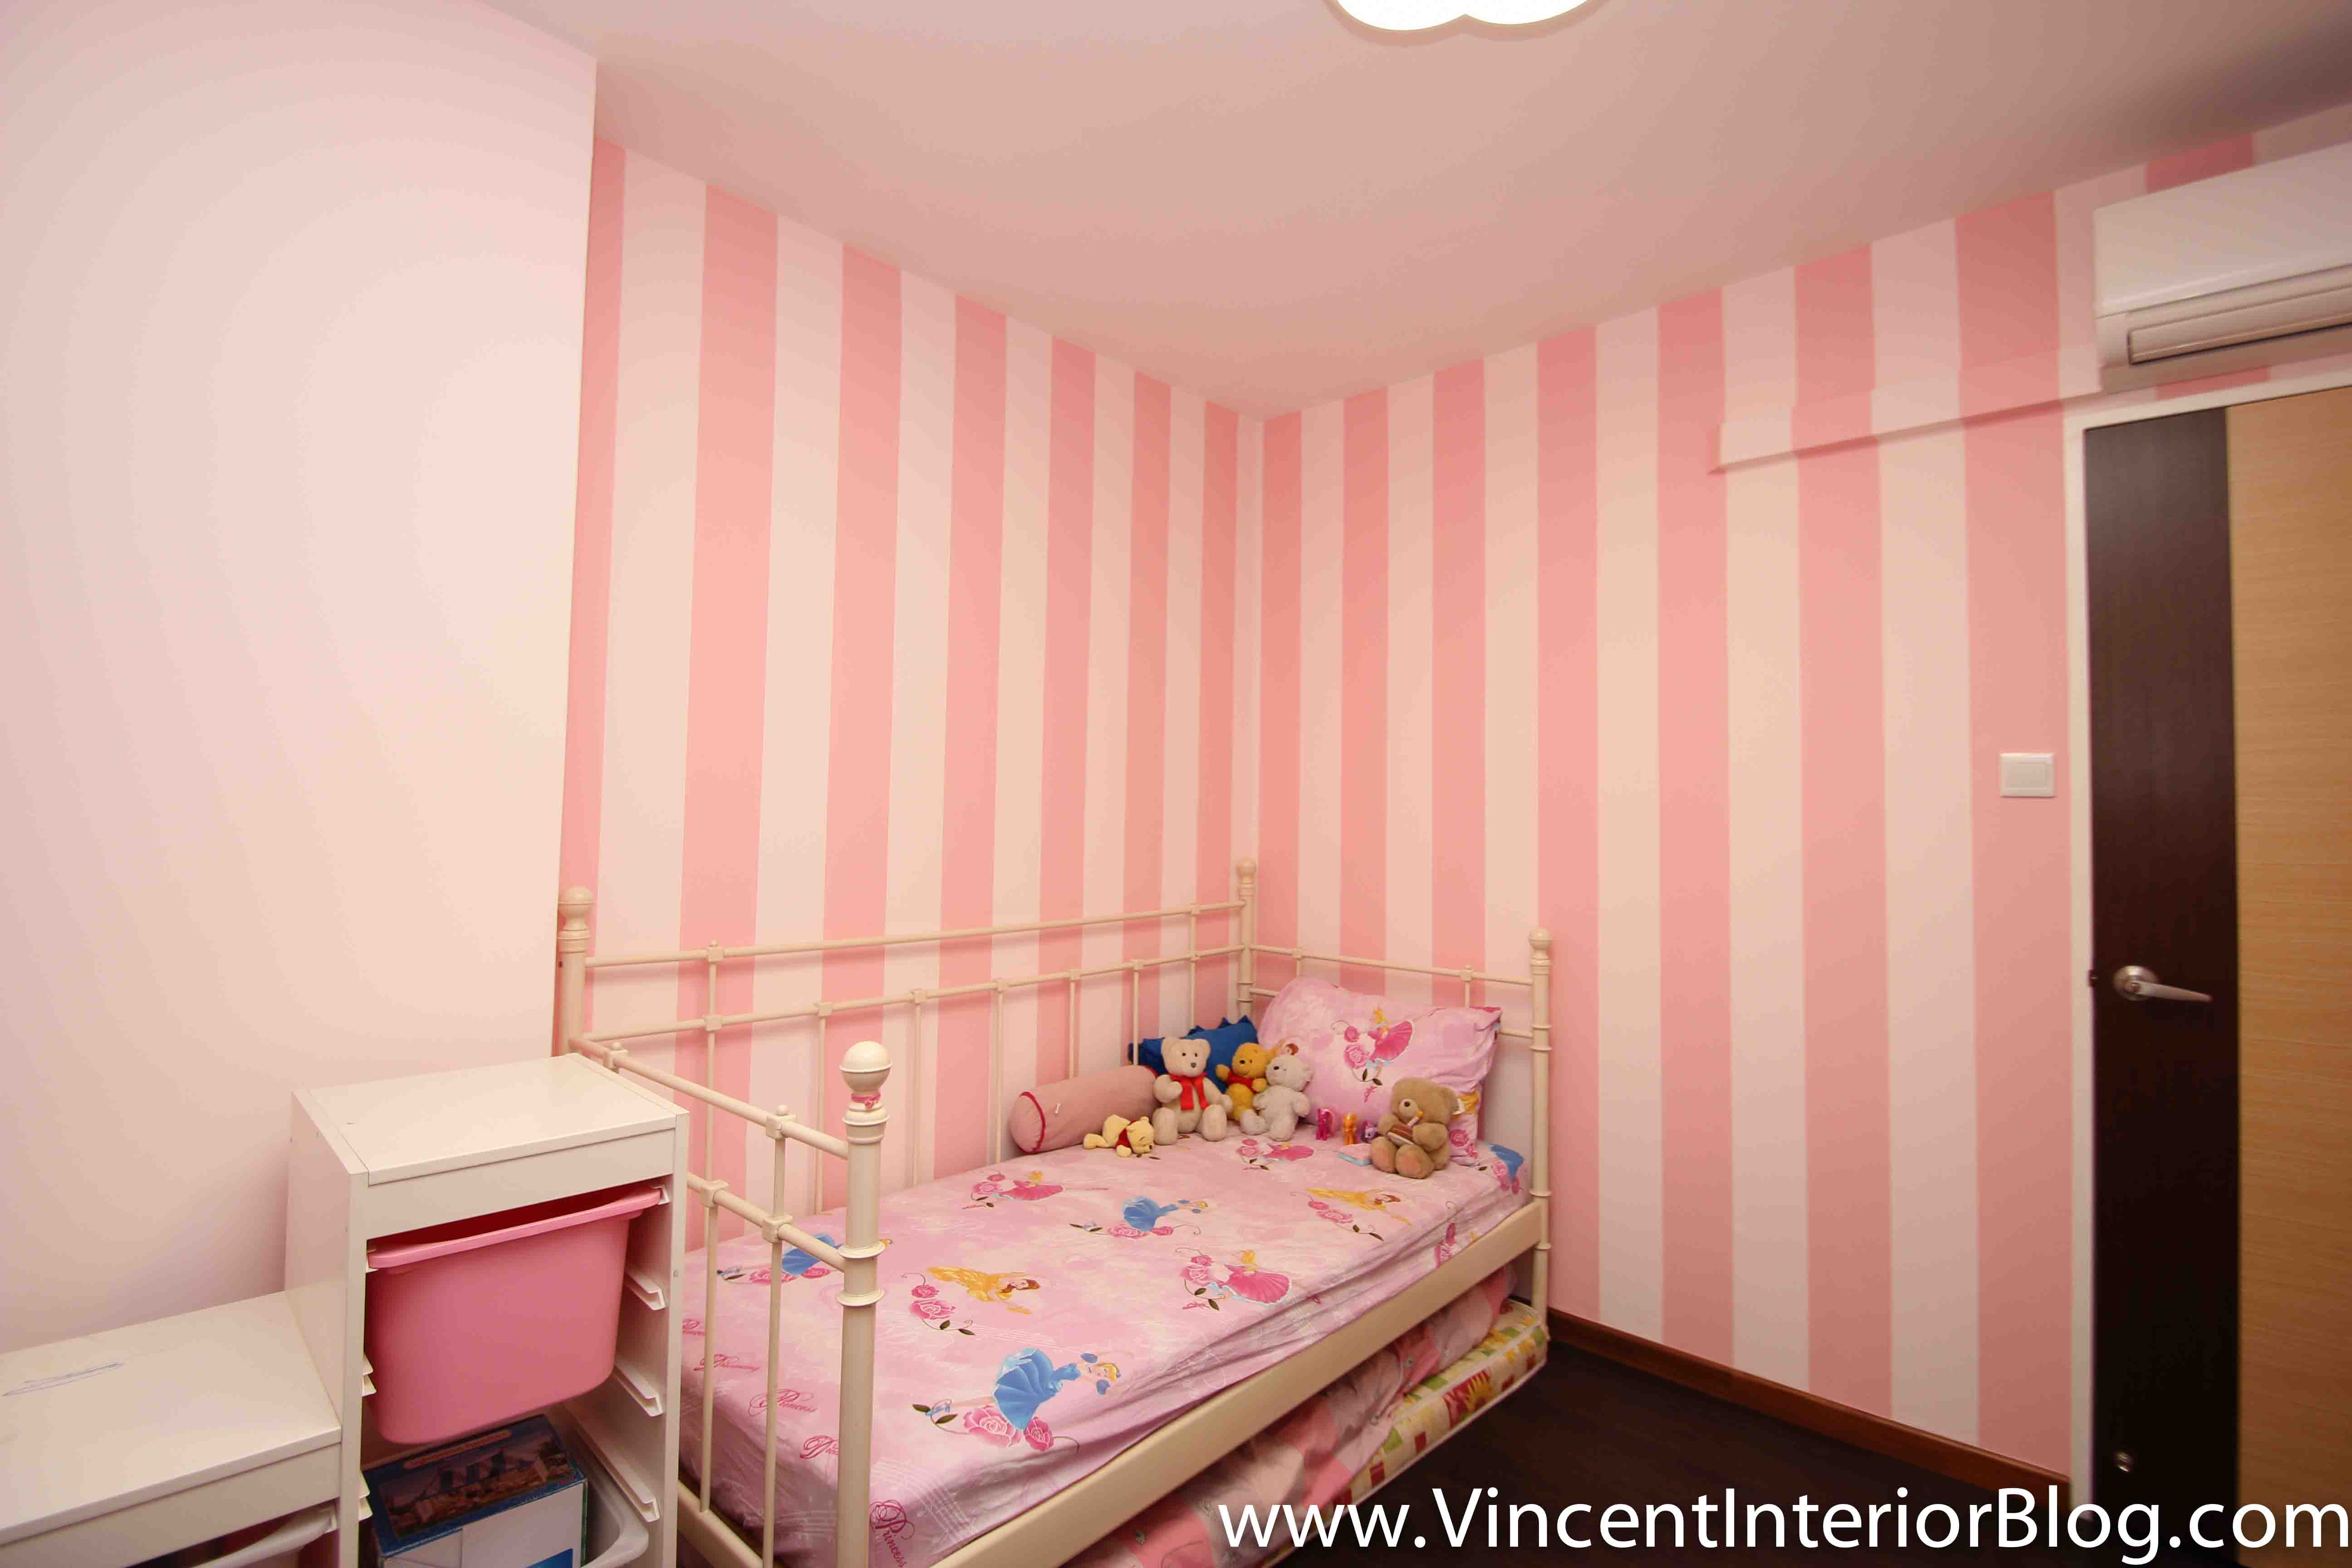 Punggol-4-Room-HDB-Day-40-Renovation-Completed-Kids-Room-2.jpg